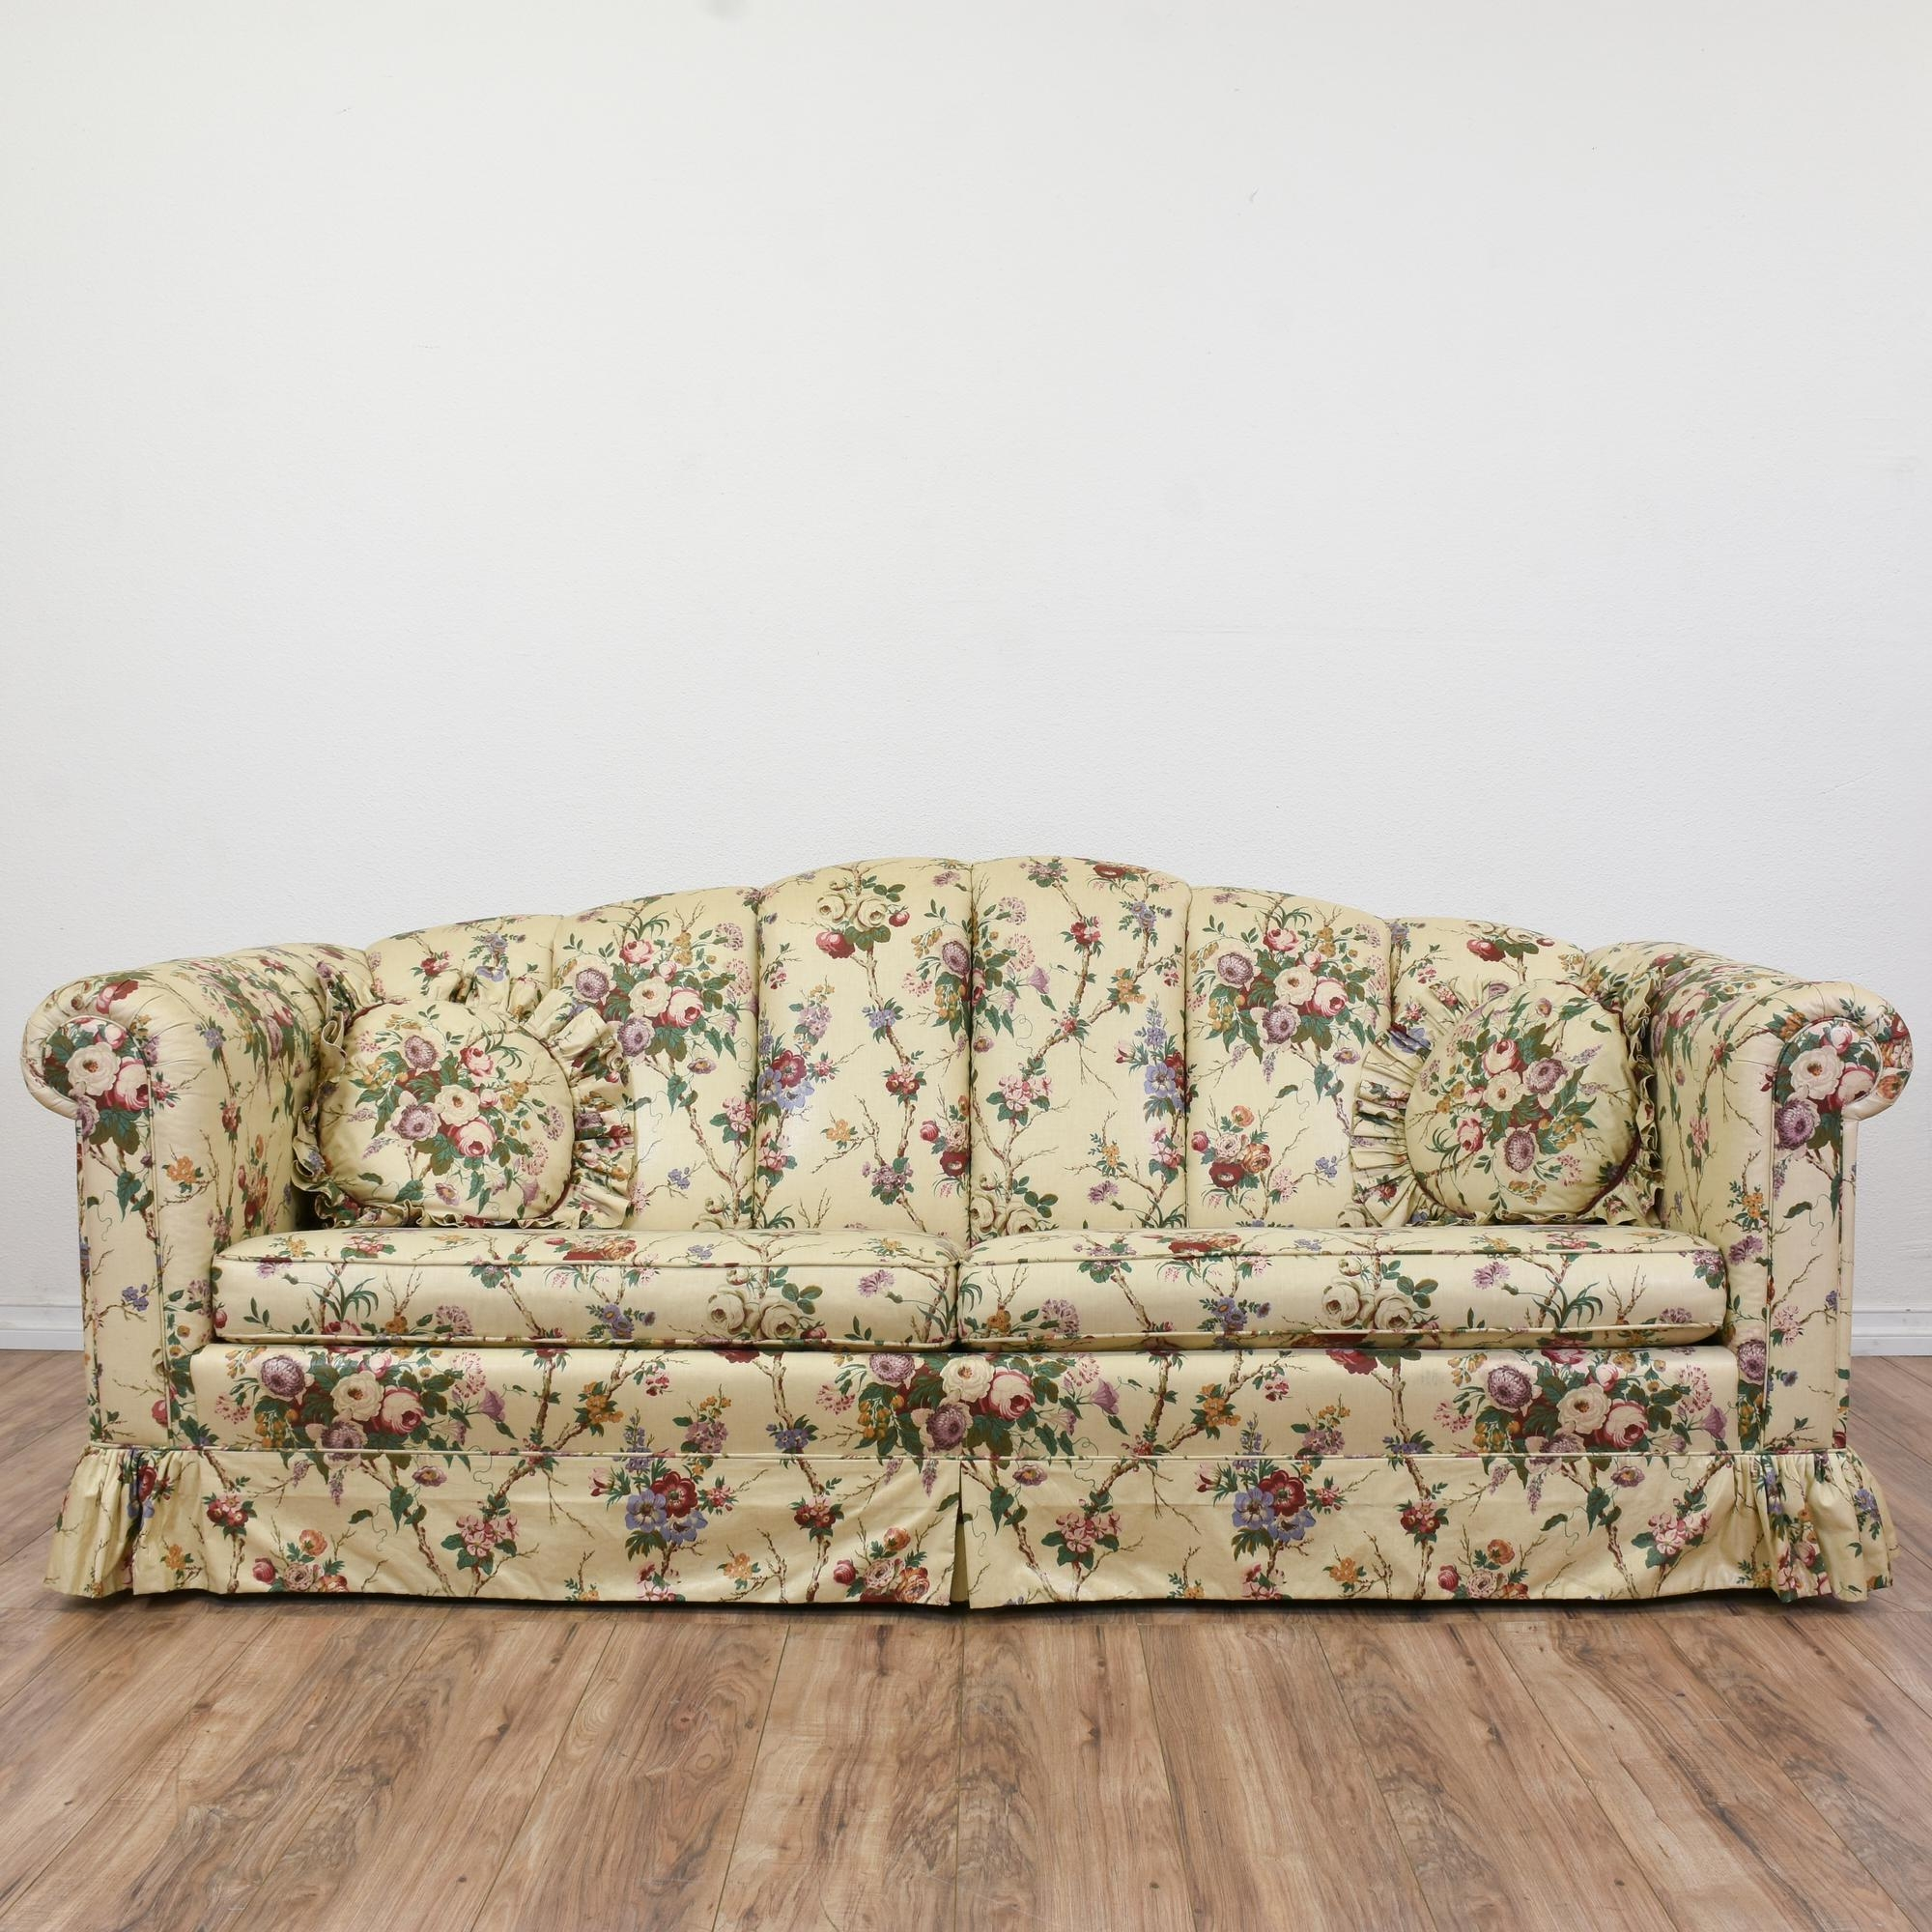 Leather Sofas London Ont: 20 Collection Of Chintz Covered Sofas